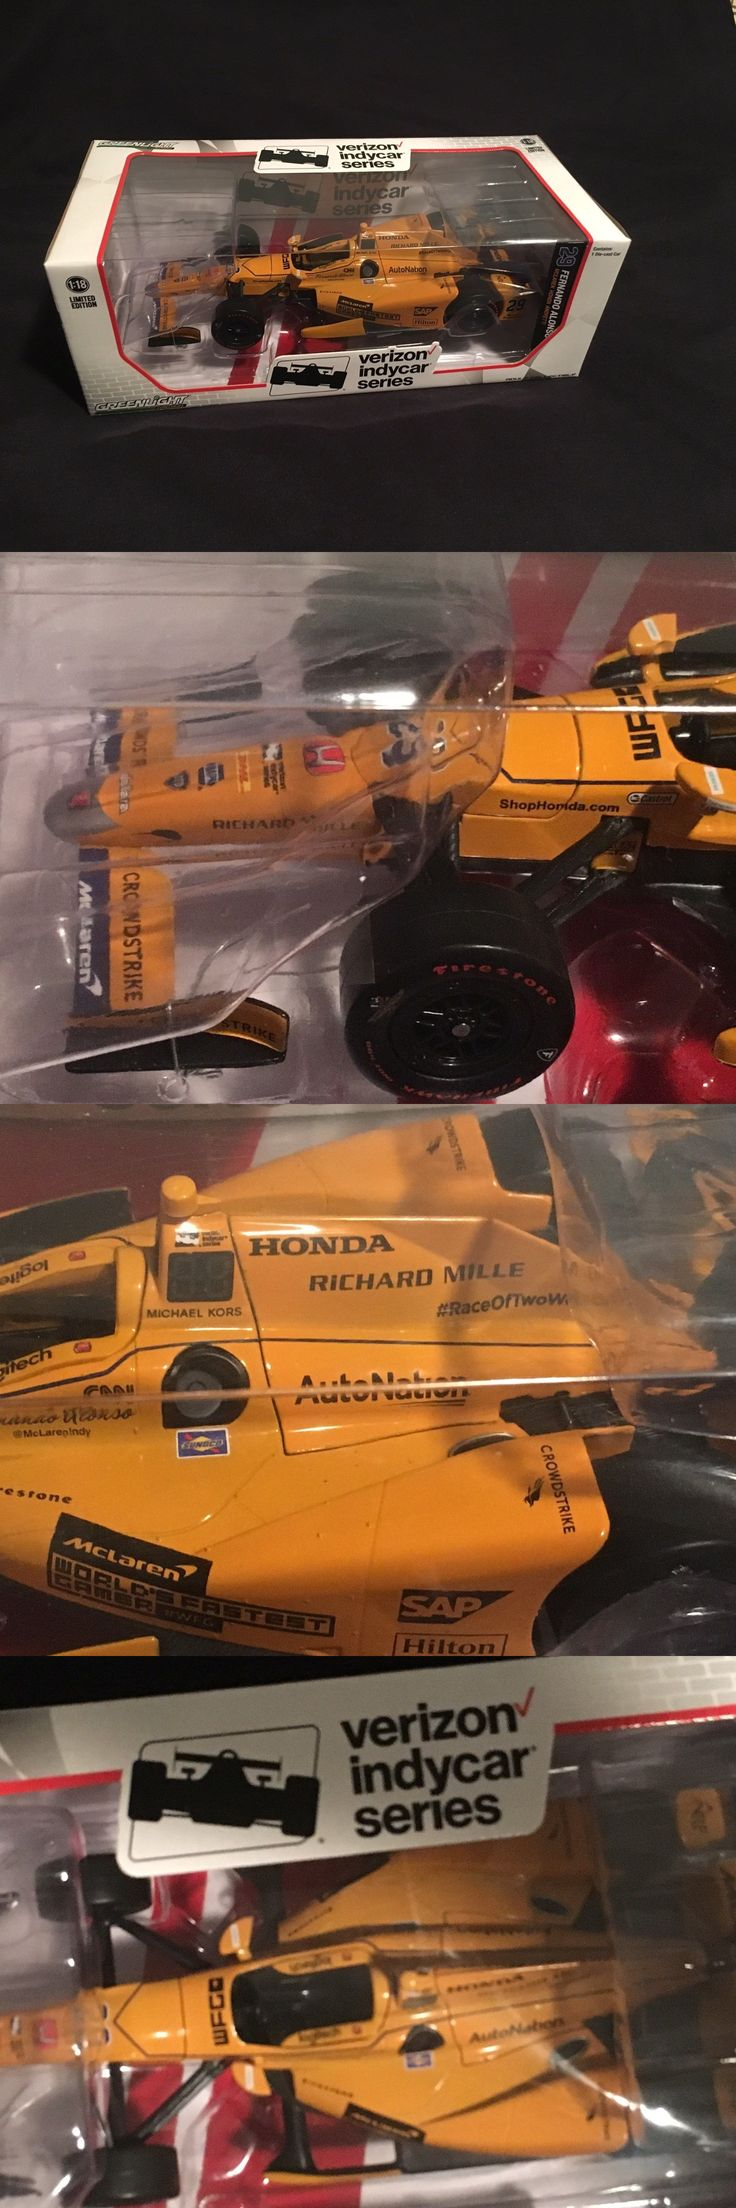 Other Diecast Racing Cars 45354: 1:18 Fernando Alonso Indy 500 Diecast Car F1 Greenlight Andretti Mclaren Honda -> BUY IT NOW ONLY: $150 on eBay!